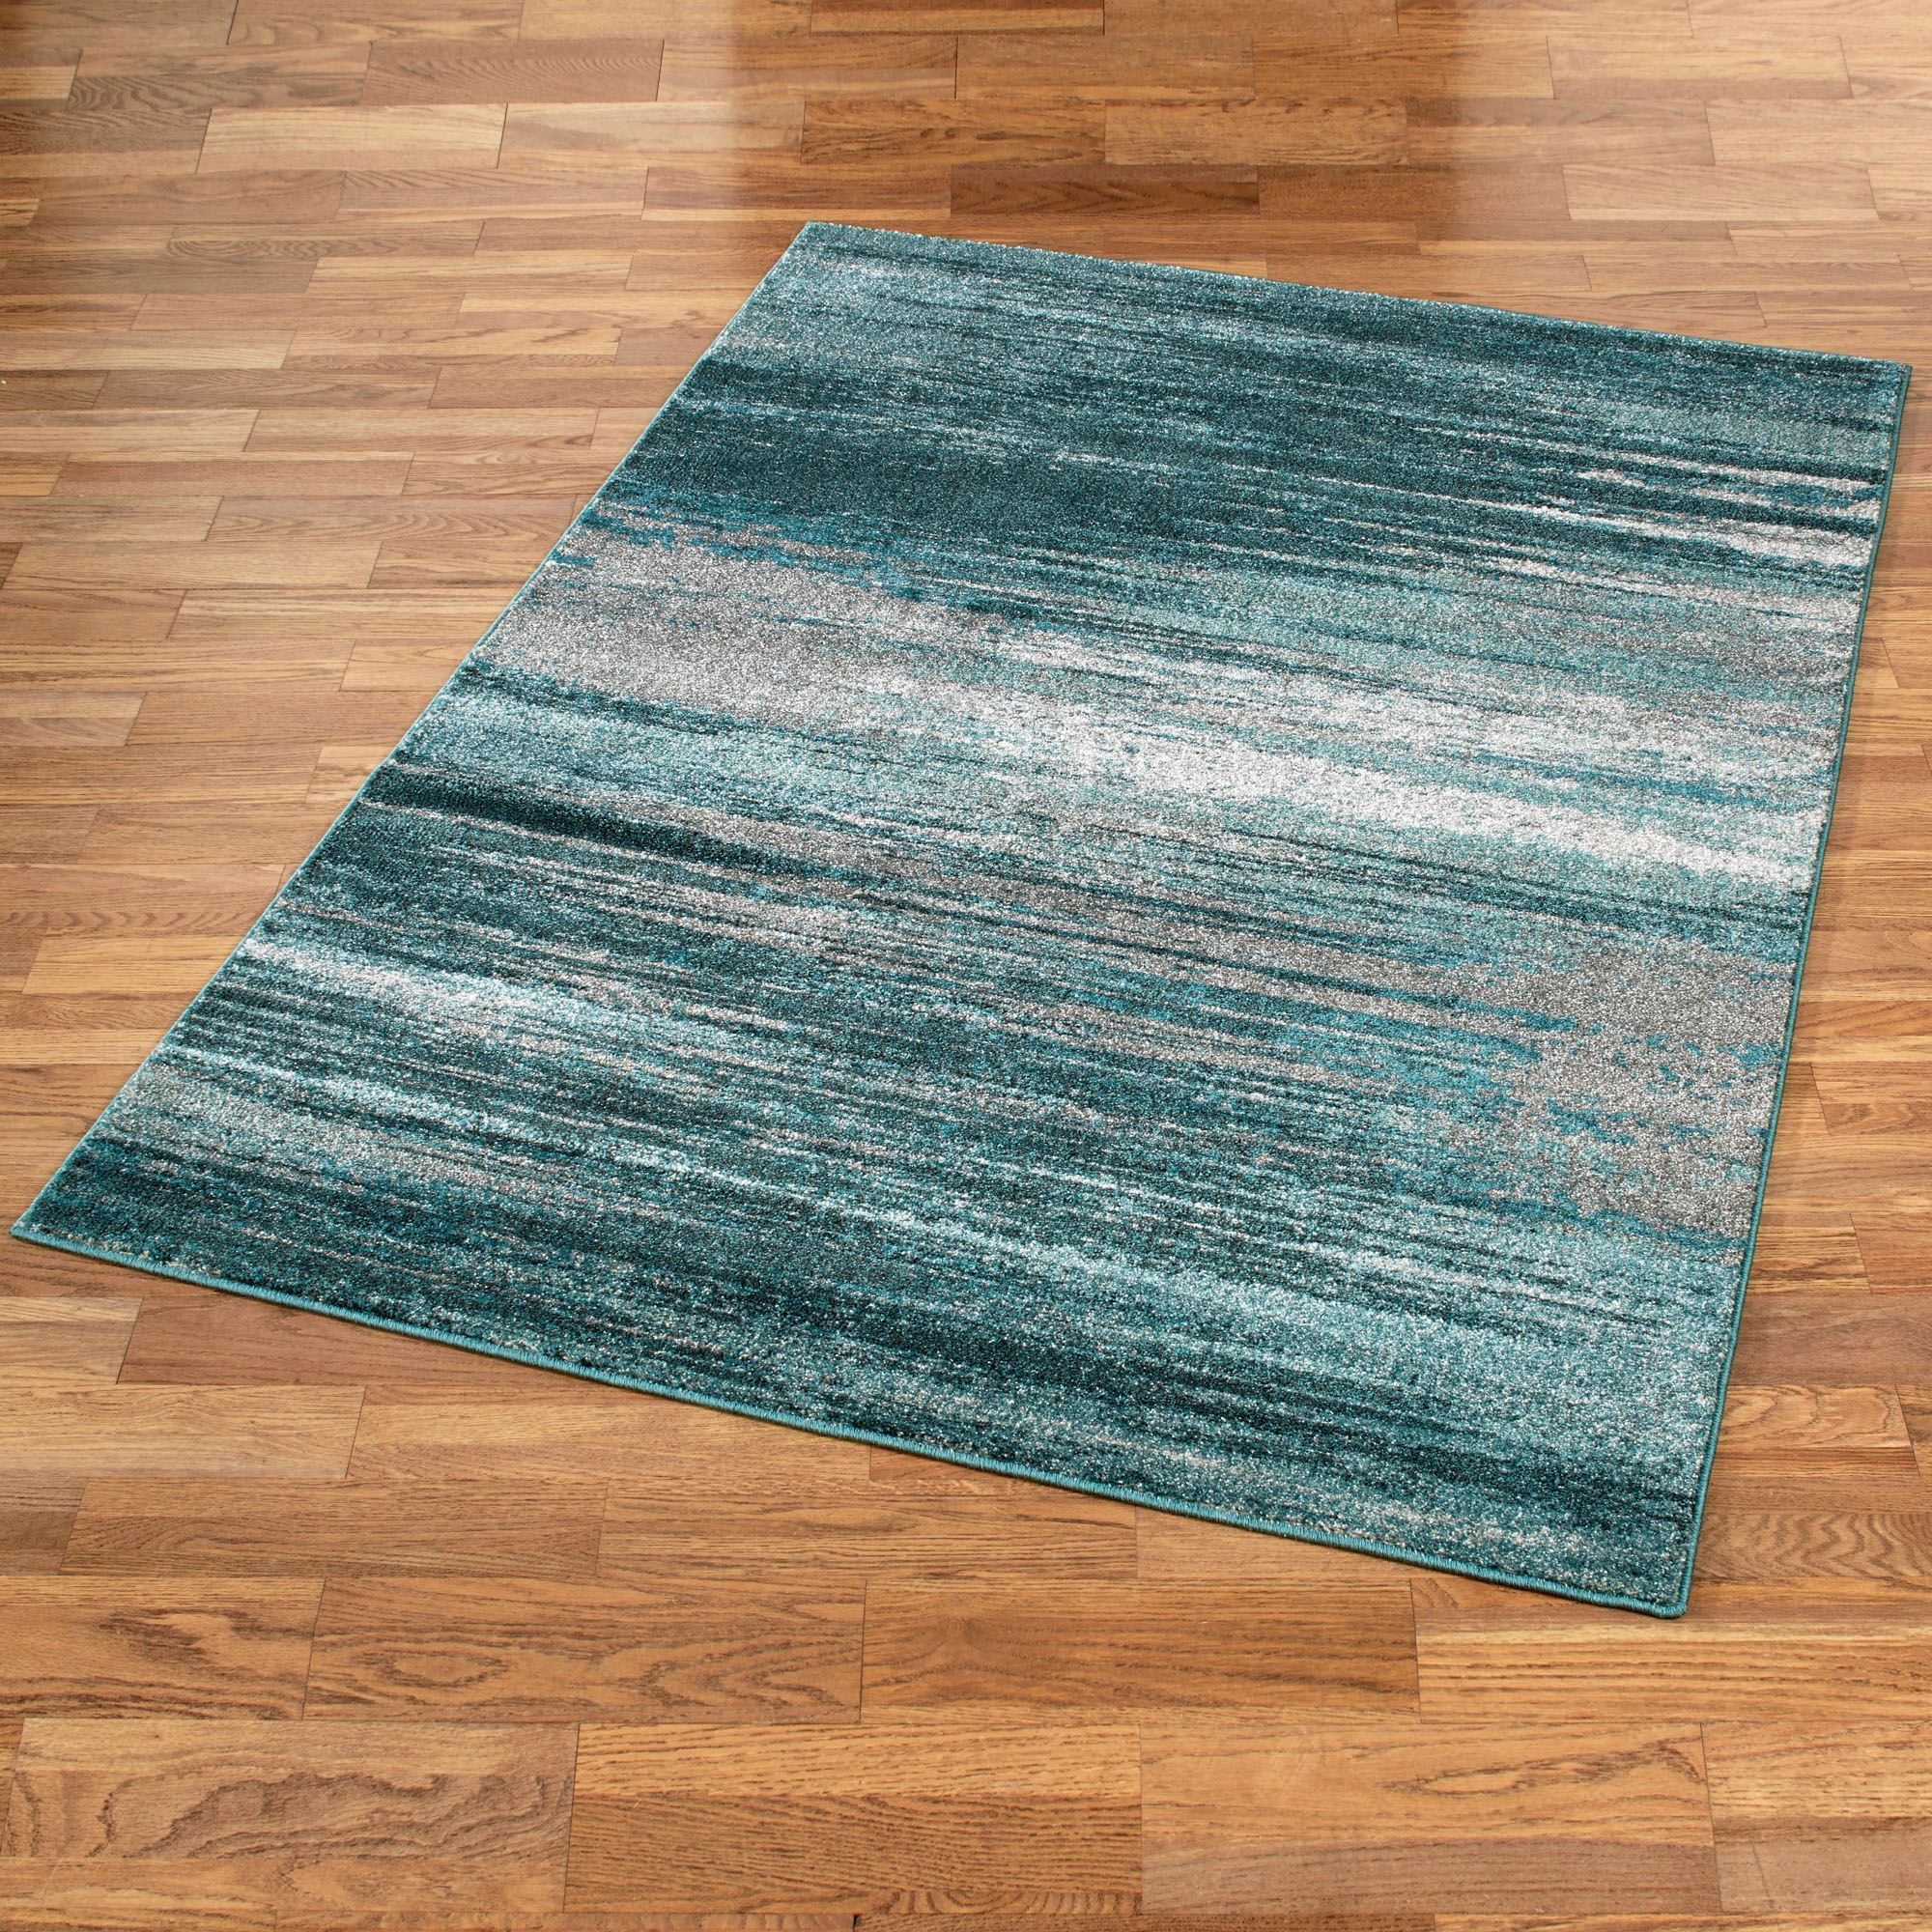 Teal Rugs Matching Color Ideas